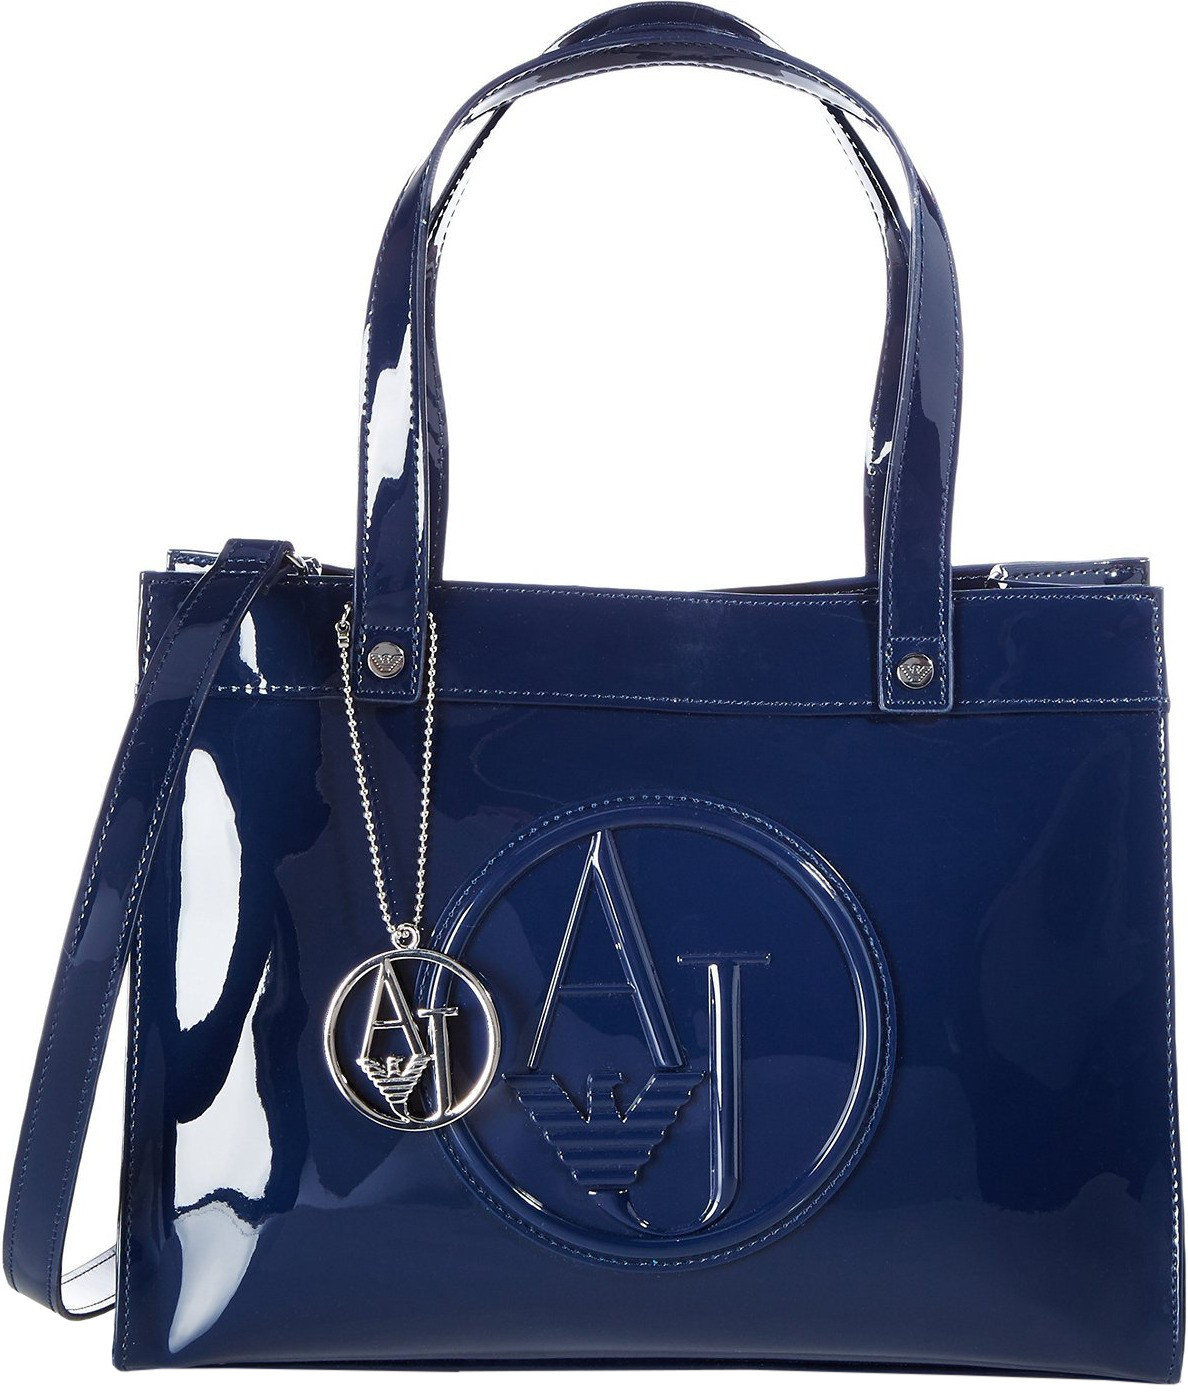 Armani Jeans Shopping Bag (0520ARJ)